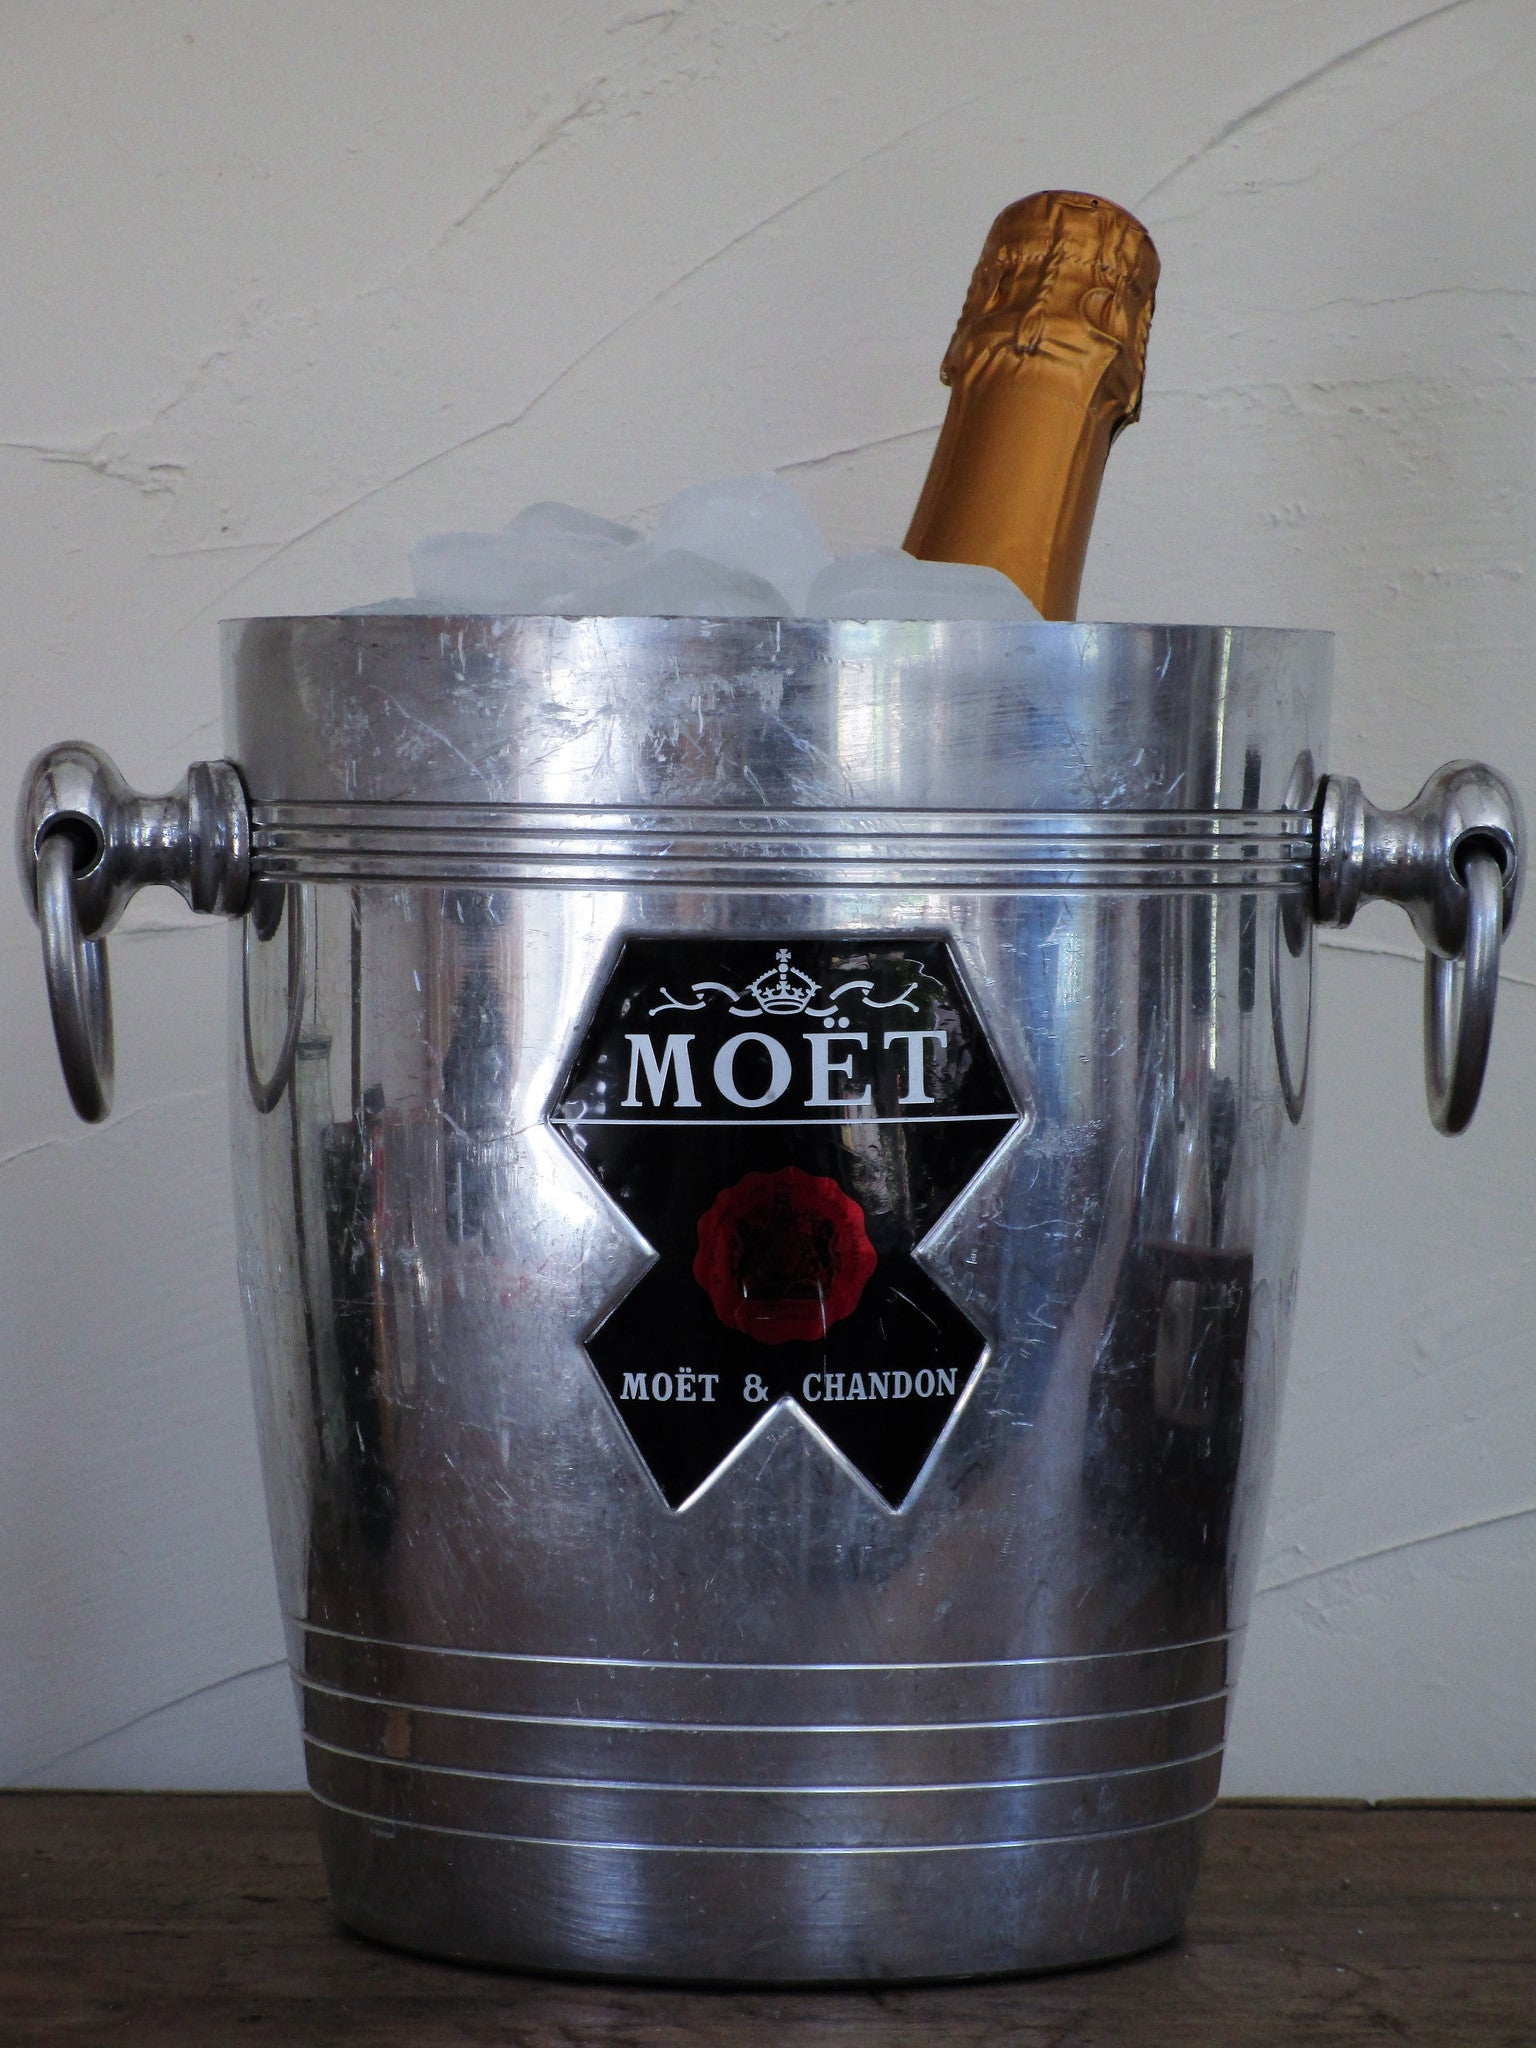 Moët & Chandon Champagne bucket - 2 bottle capacity